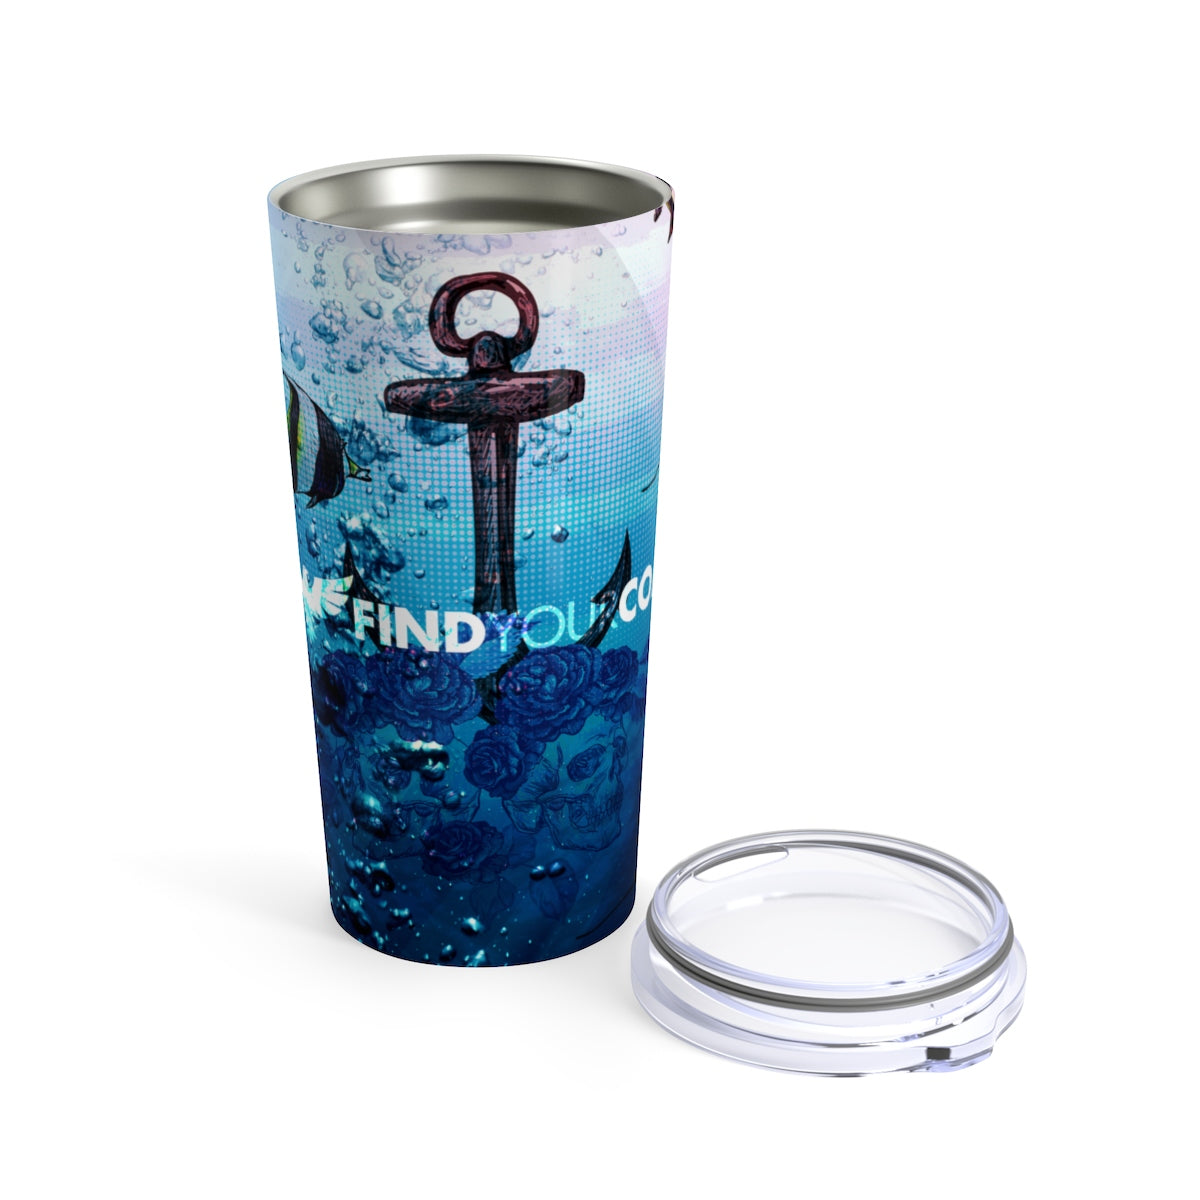 FYC 20 oz Stainless Steel Ocean Anchor/Skull Art Tumbler - Find Your Coast Brand